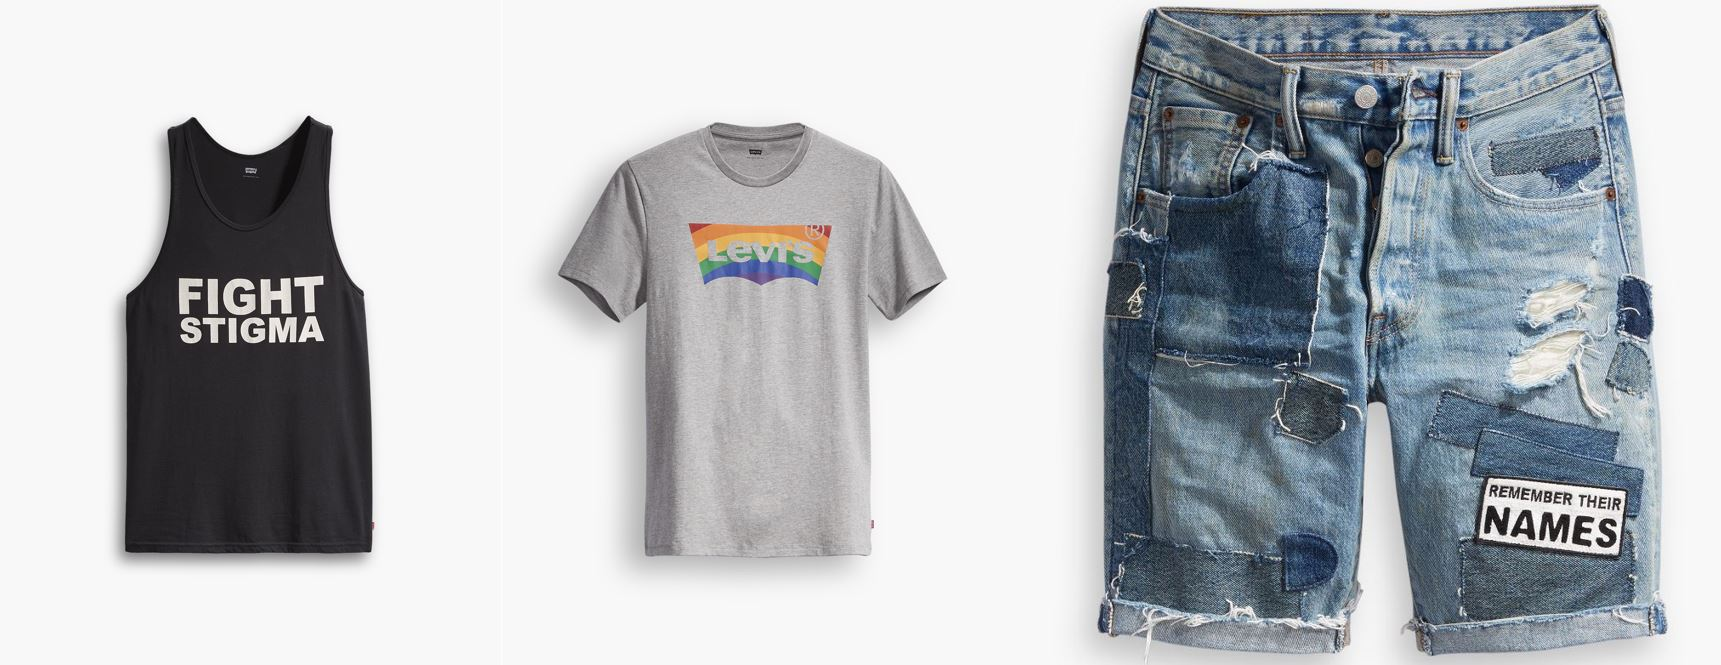 Fight Stigma è uno slogan ripreso per la Pride Collection di Levi's.